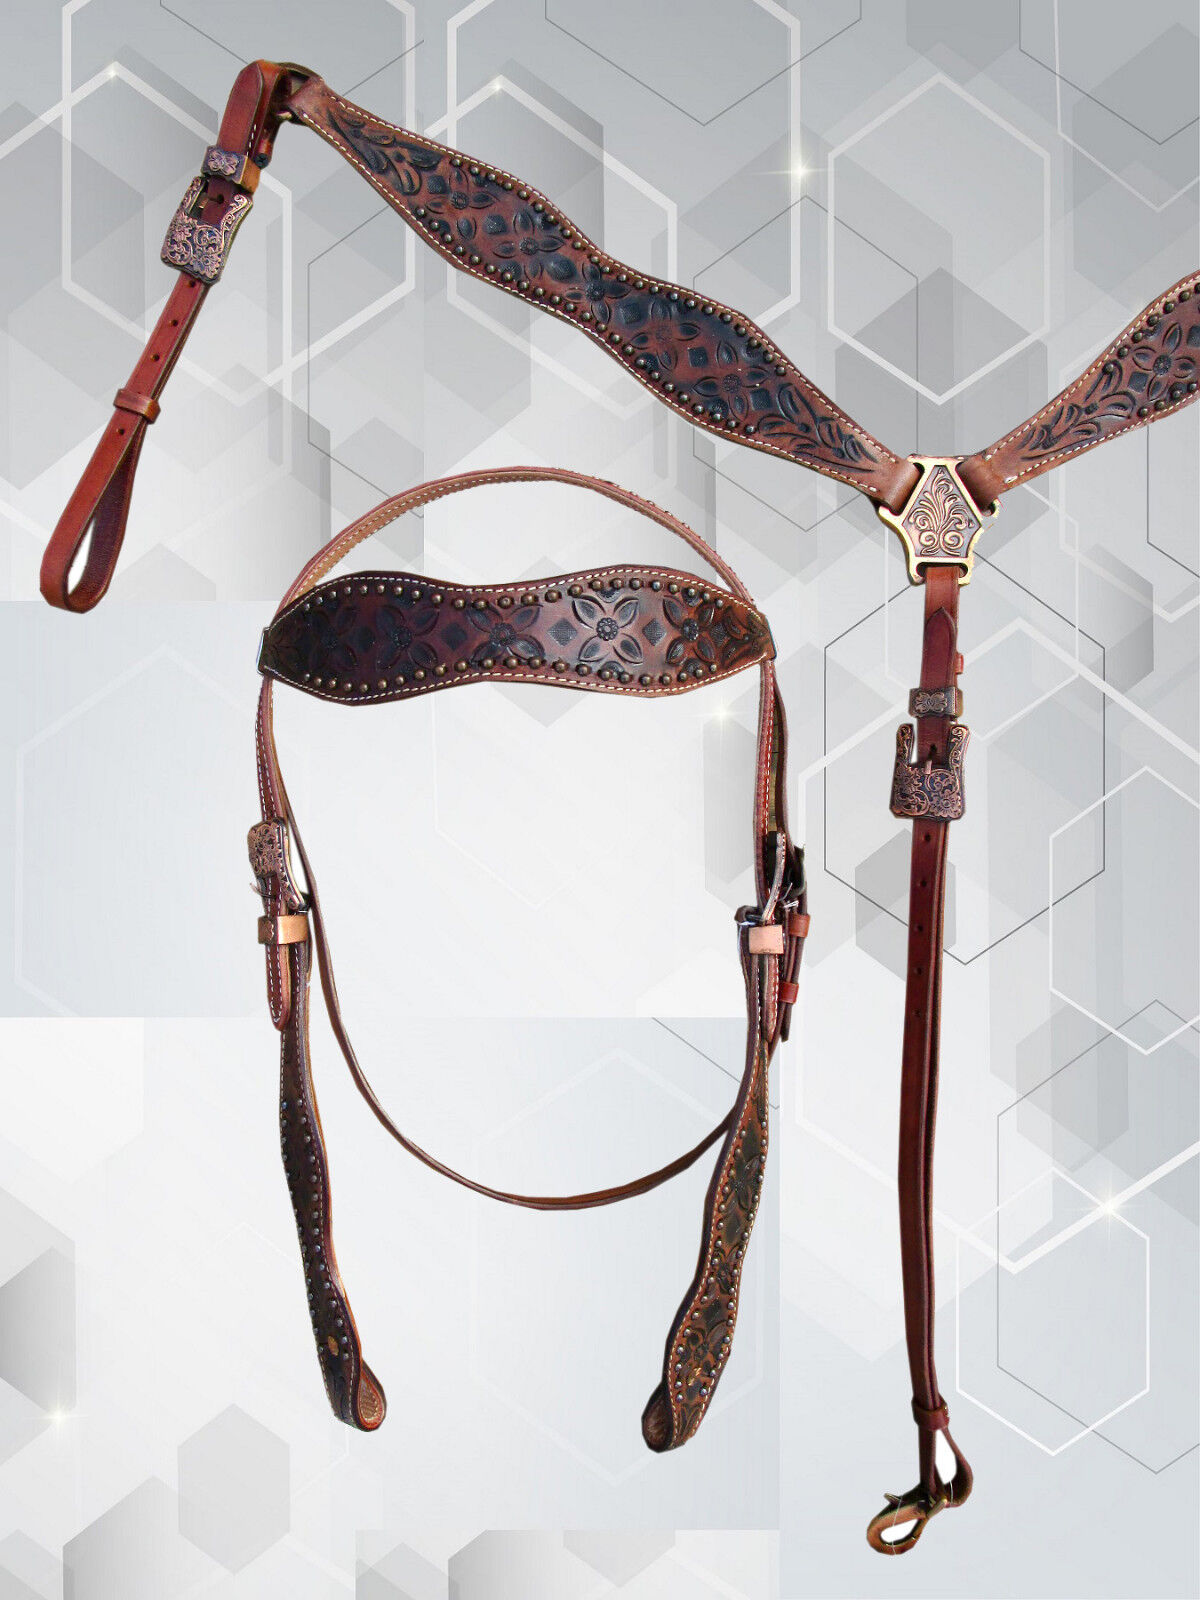 WESTERN  RACING SHOW EVENT PARADE HORSE HEADSTALL BREASTCOLLAR SET LEATHER BRIDLE  sale online